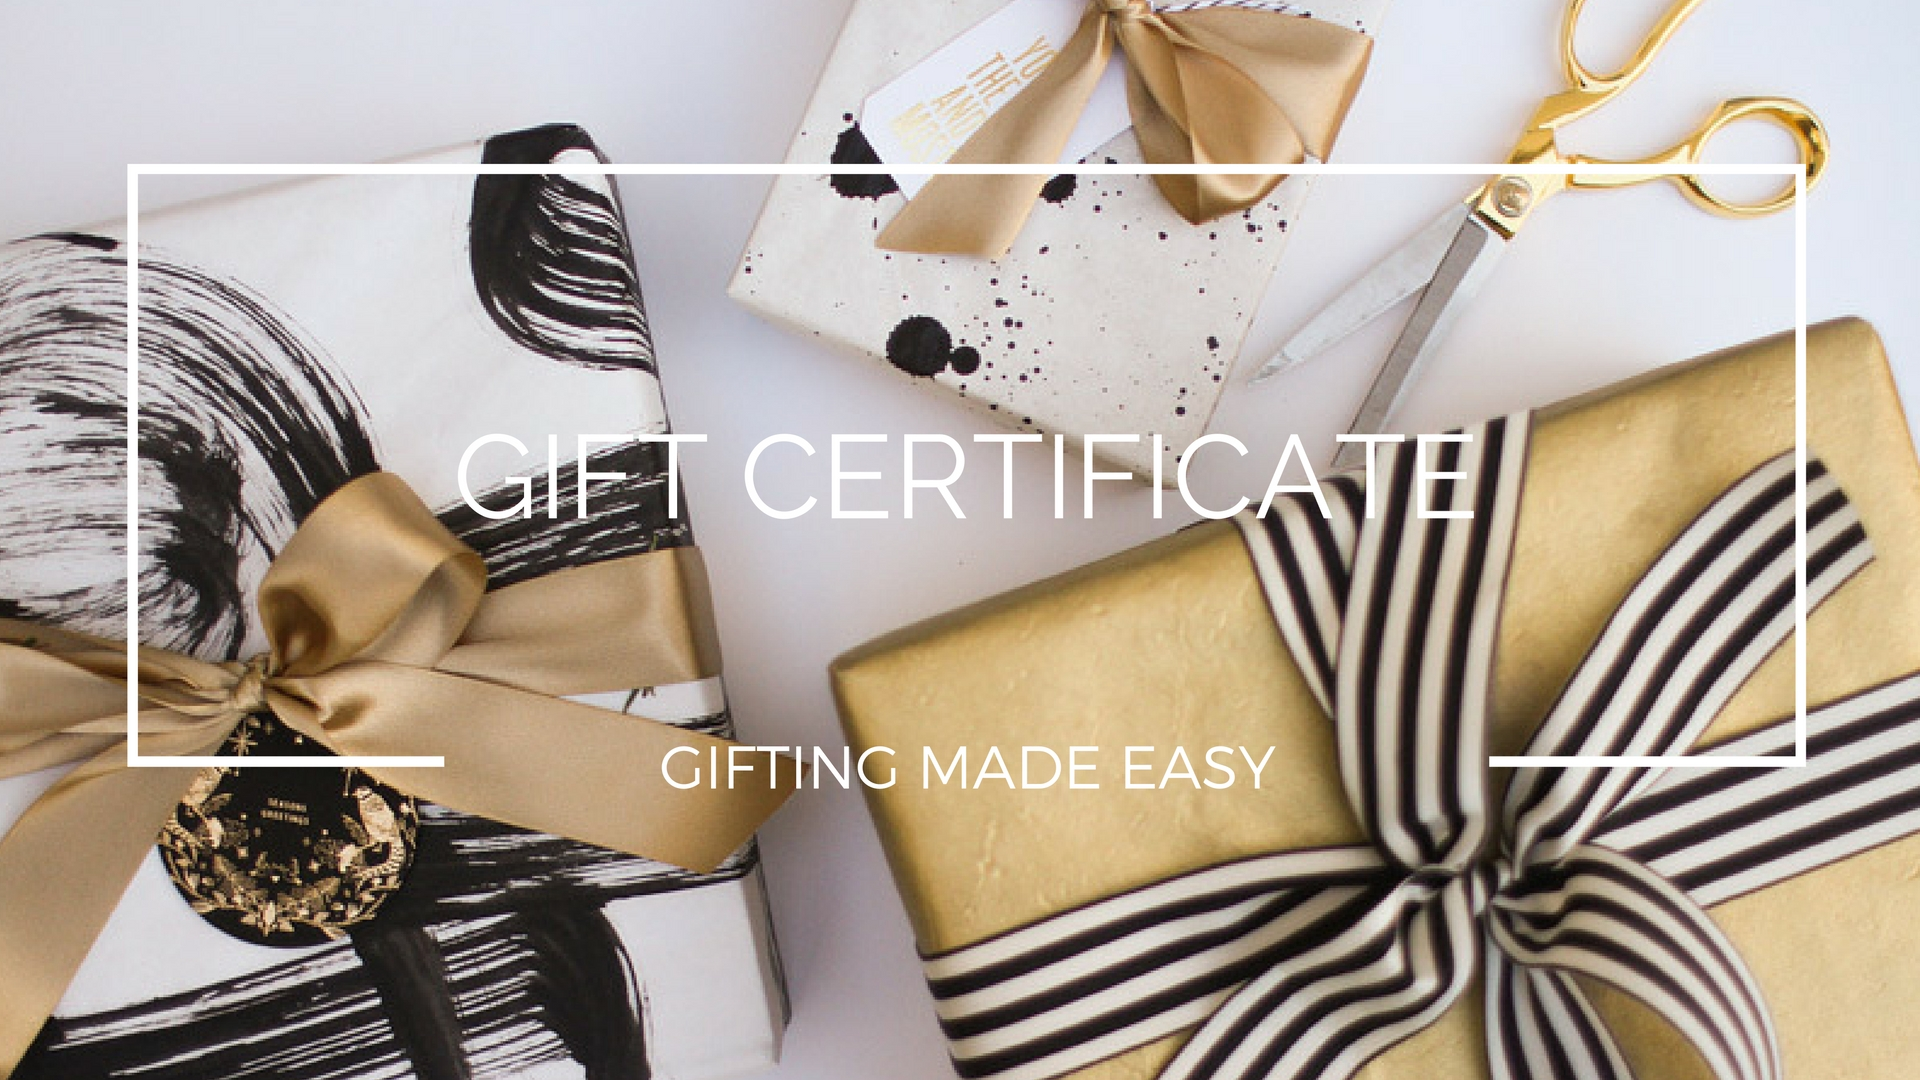 web-site-gift-certificate